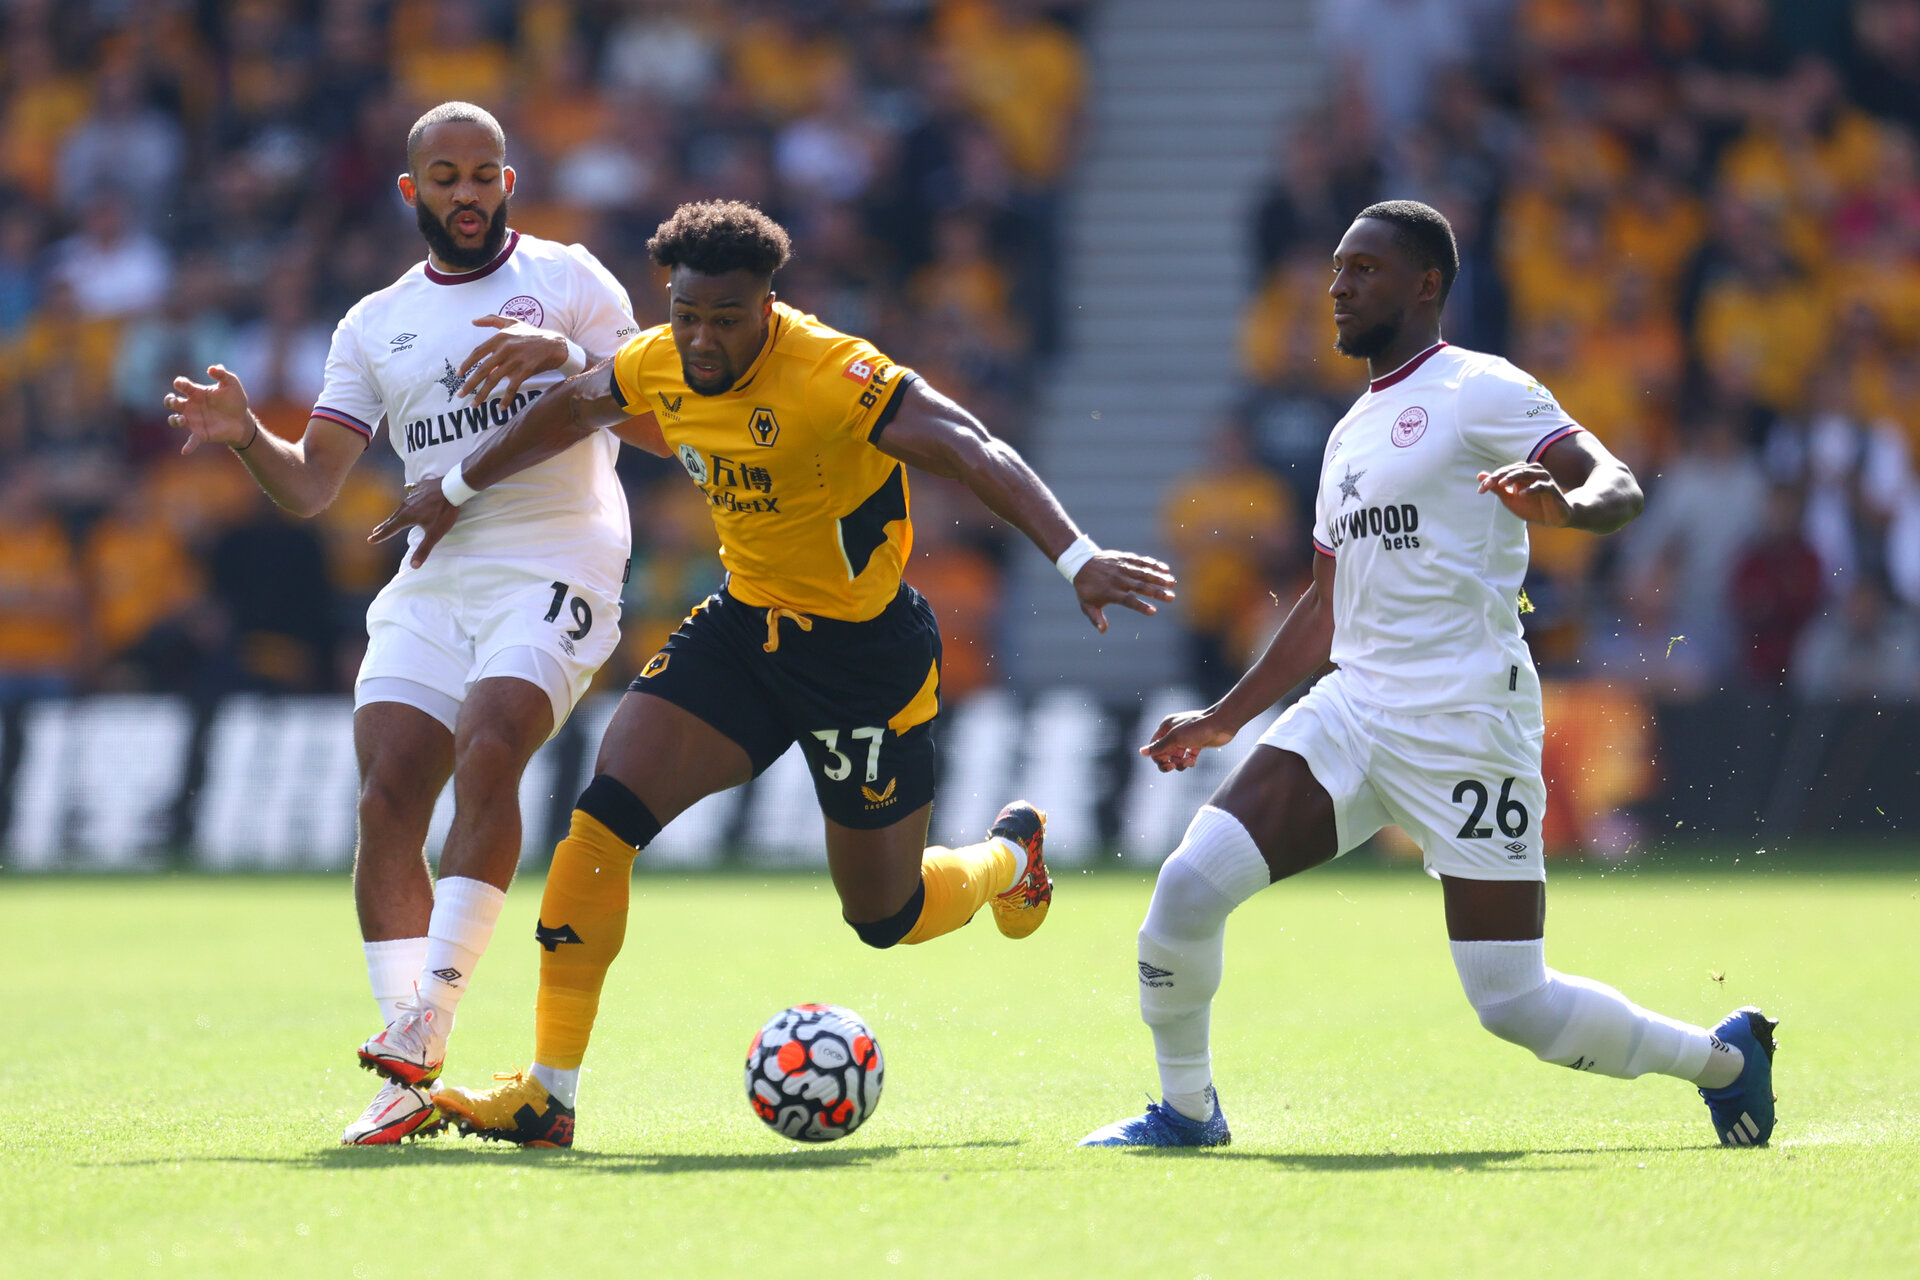 WOLVERHAMPTON, ENGLAND - SEPTEMBER 18: Adama Traore of Wolverhampton Wanderers is challenged by Bryan Mbeumo and Shandon Baptiste of Brentford during the Premier League match between Wolverhampton Wanderers and Brentford at Molineux on September 18, 2021 in Wolverhampton, England. (Photo by Catherine Ivill/Getty Images)